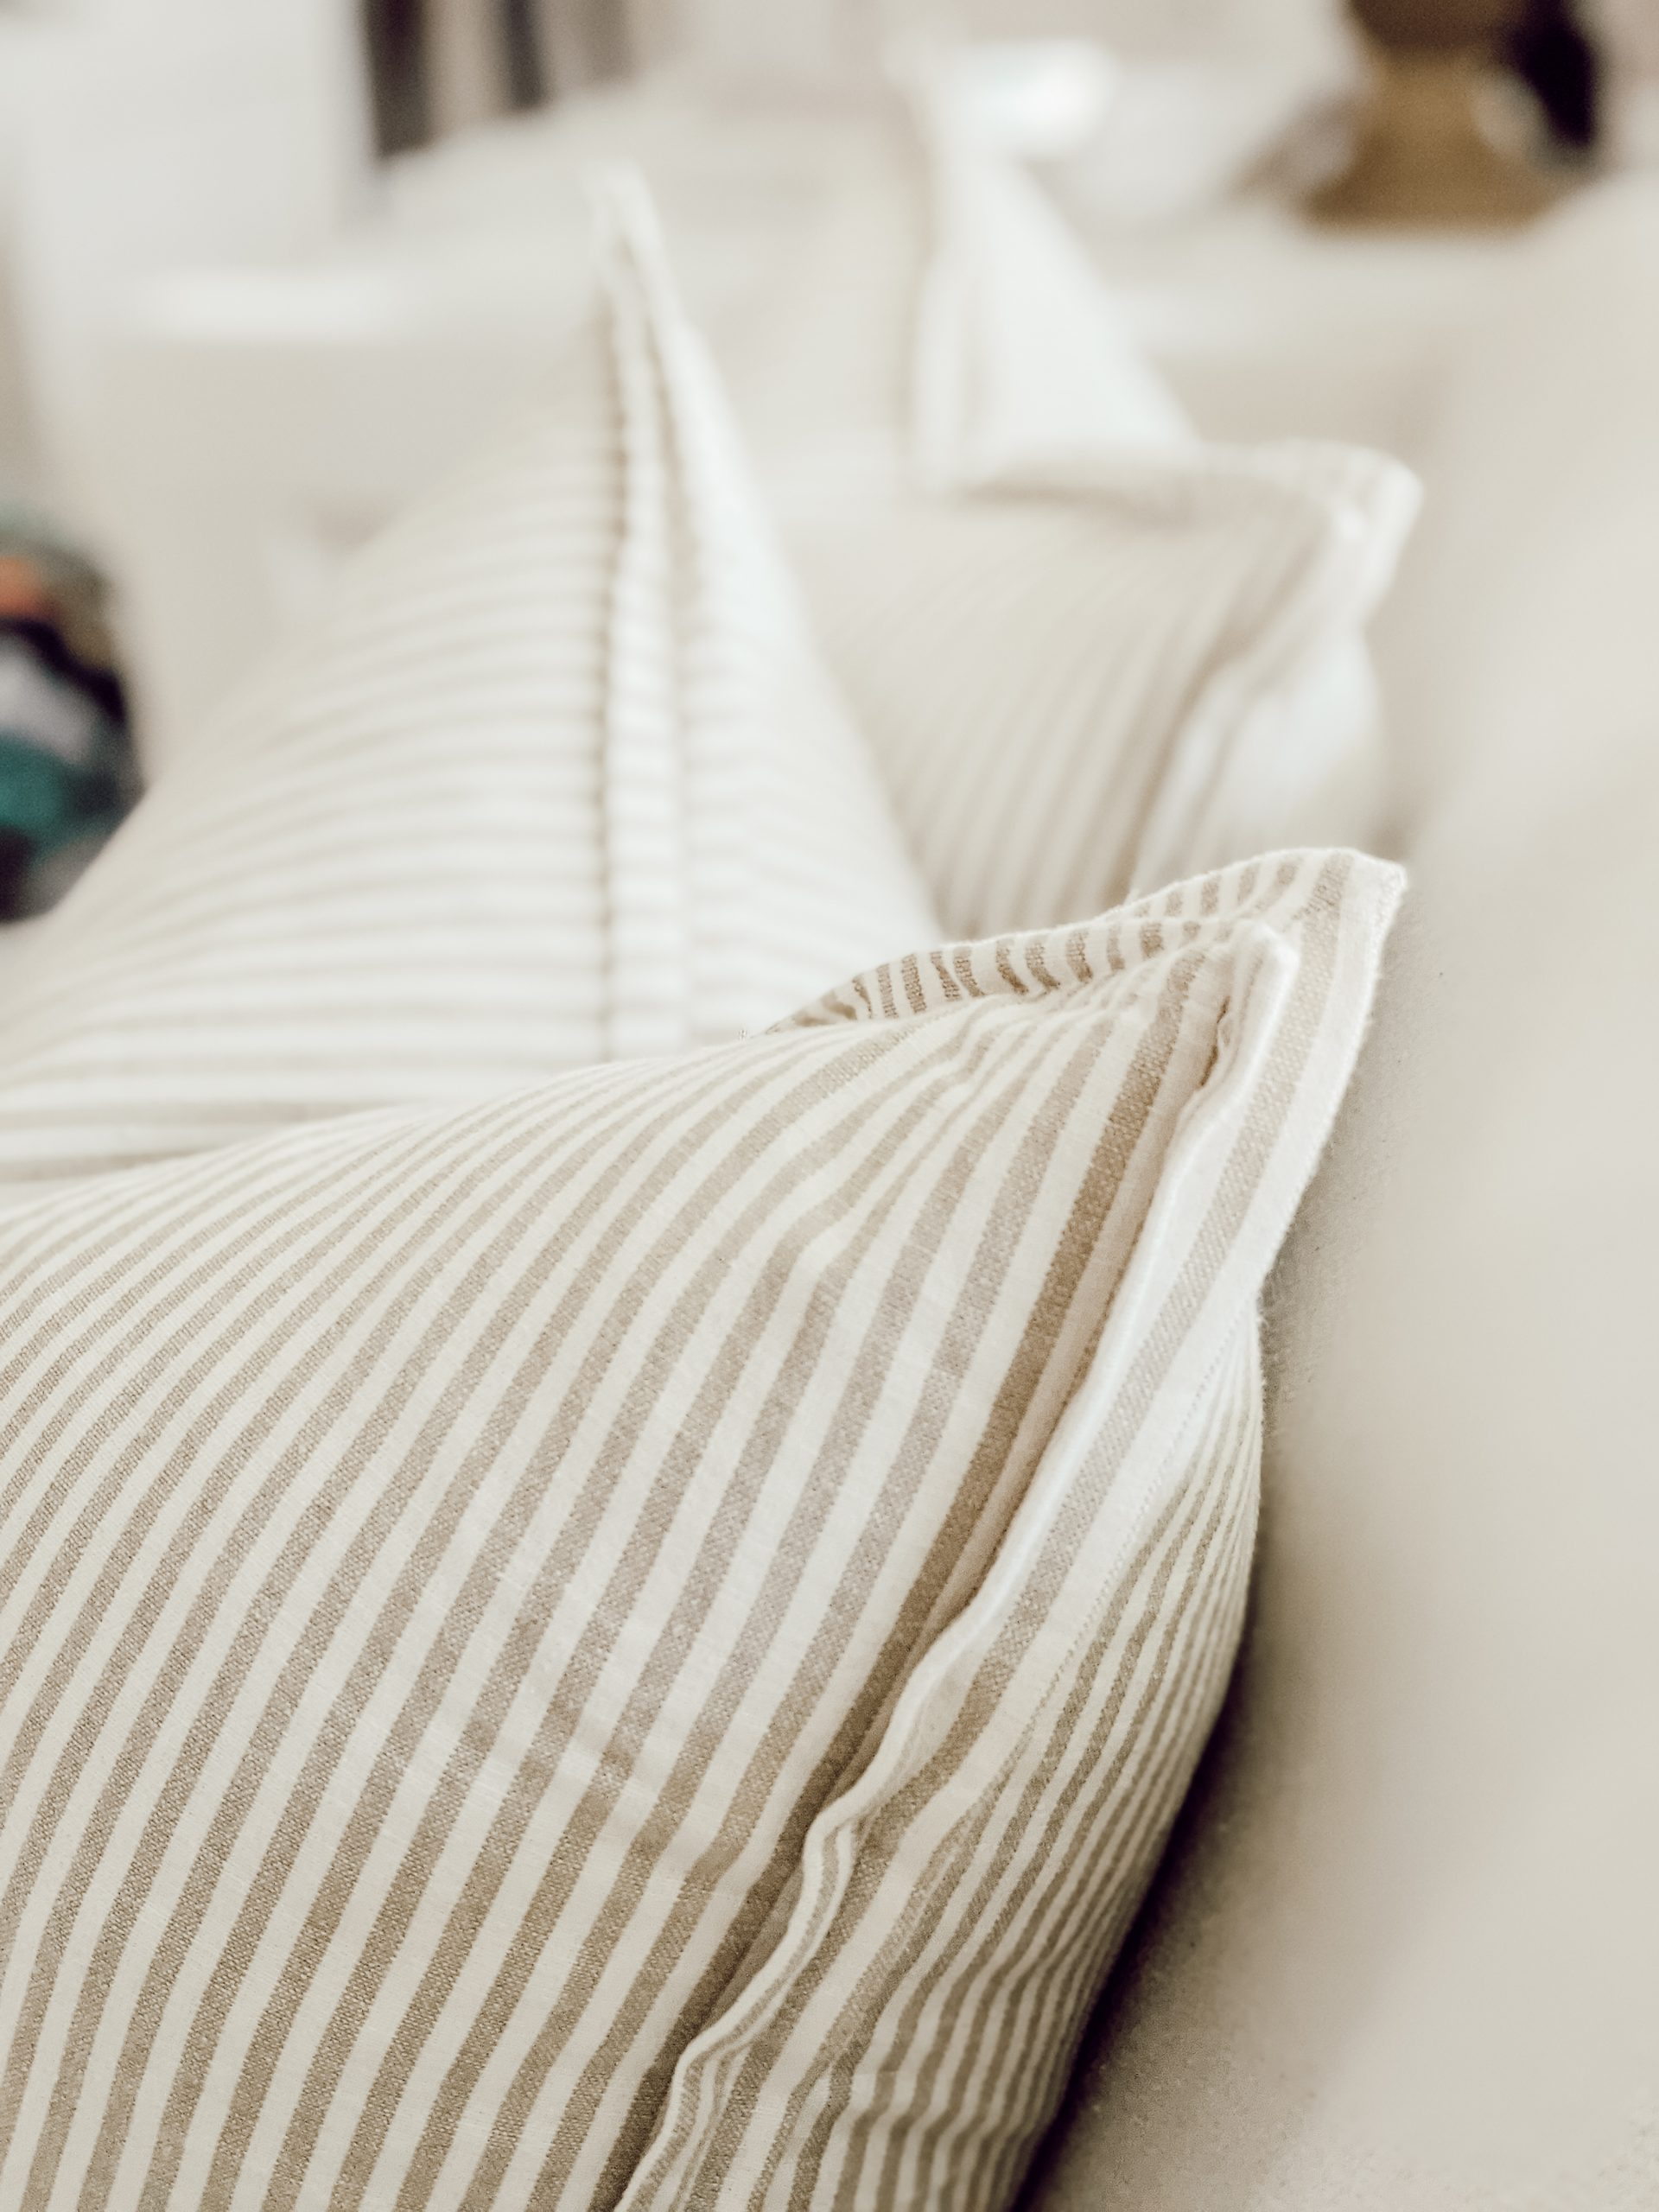 edge details of diy striped pillow covers